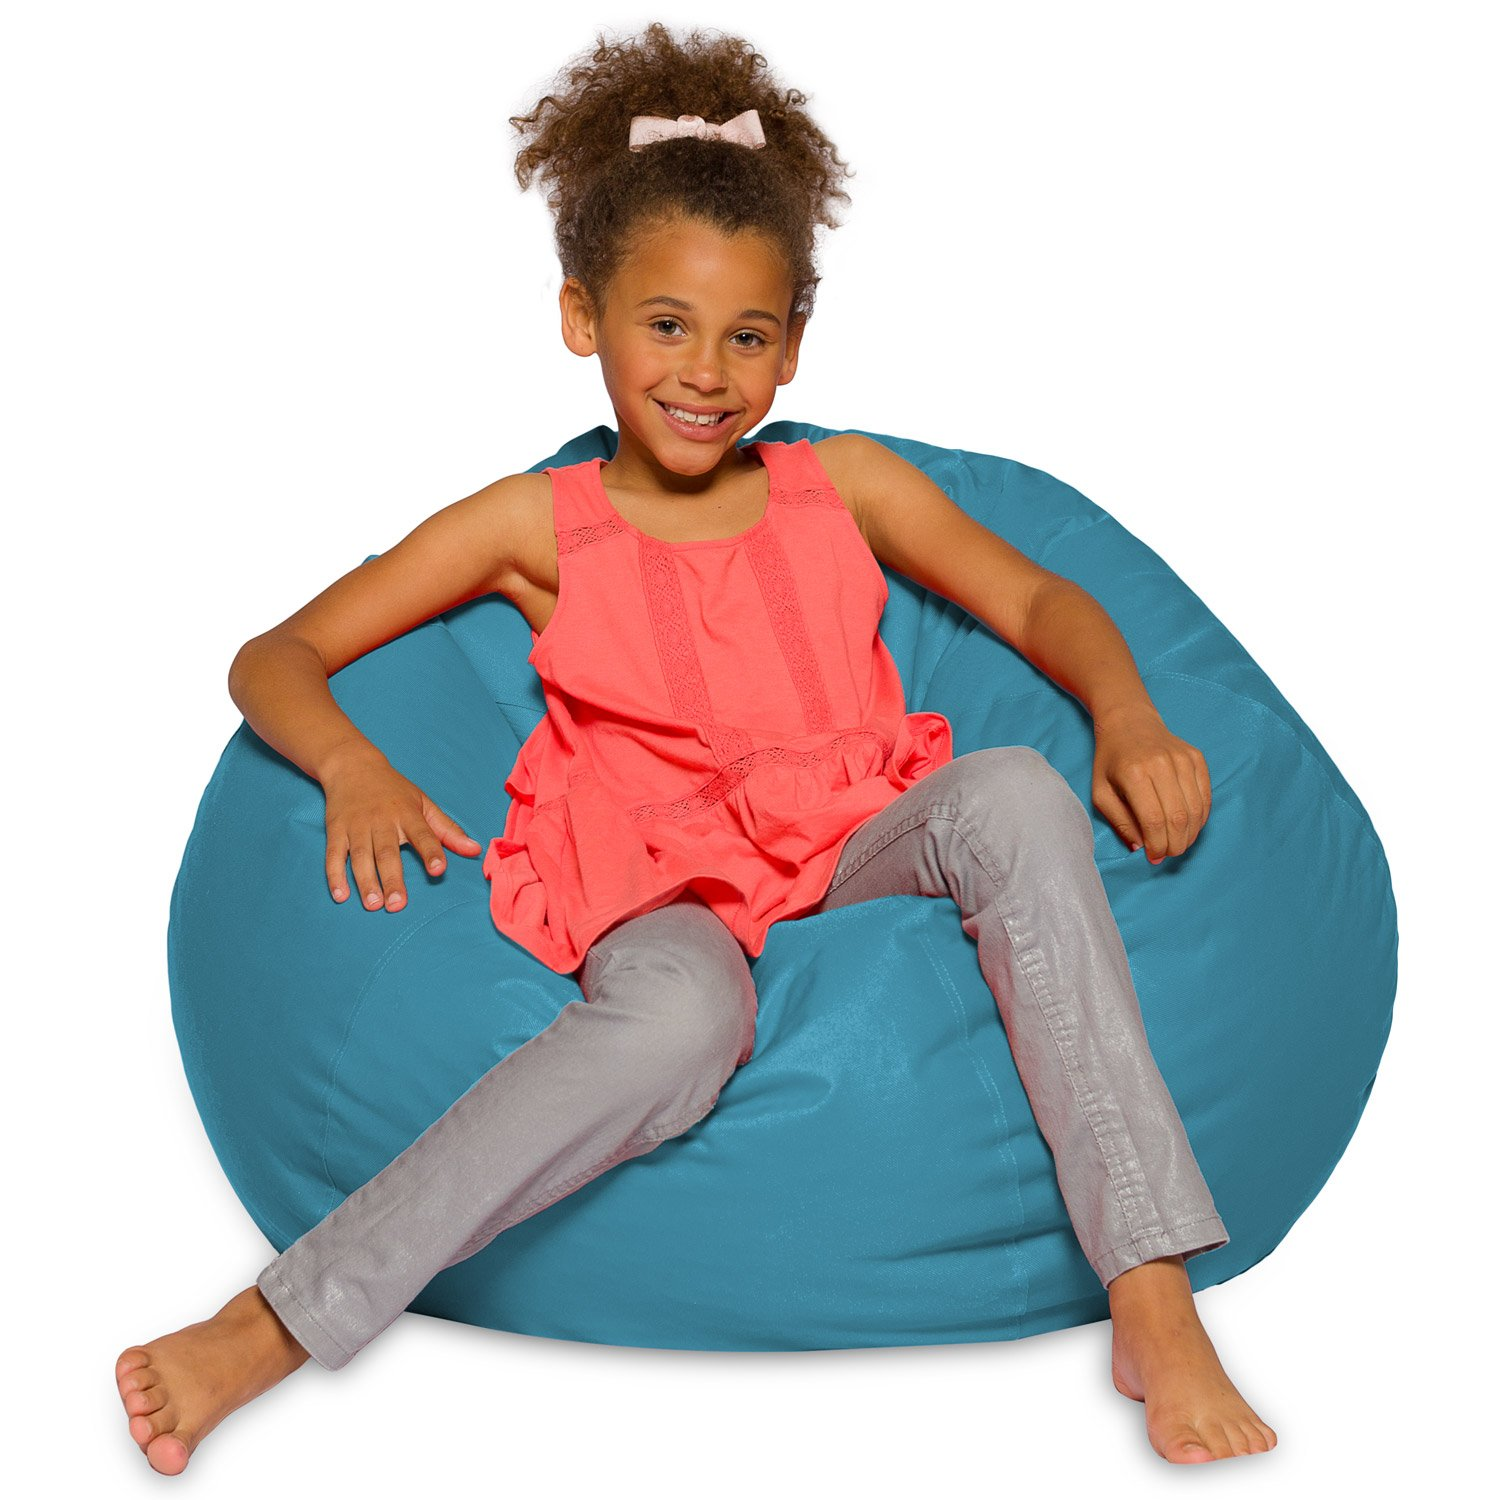 Big Comfy Bean Bag Chair: Posh Large Beanbag Chairs with Removable Cover for Kids, Teens and Adults - Polyester Cloth Puff Sack Lounger Furniture for All Ages - 27 Inch - Heather Teal by Posh Beanbags